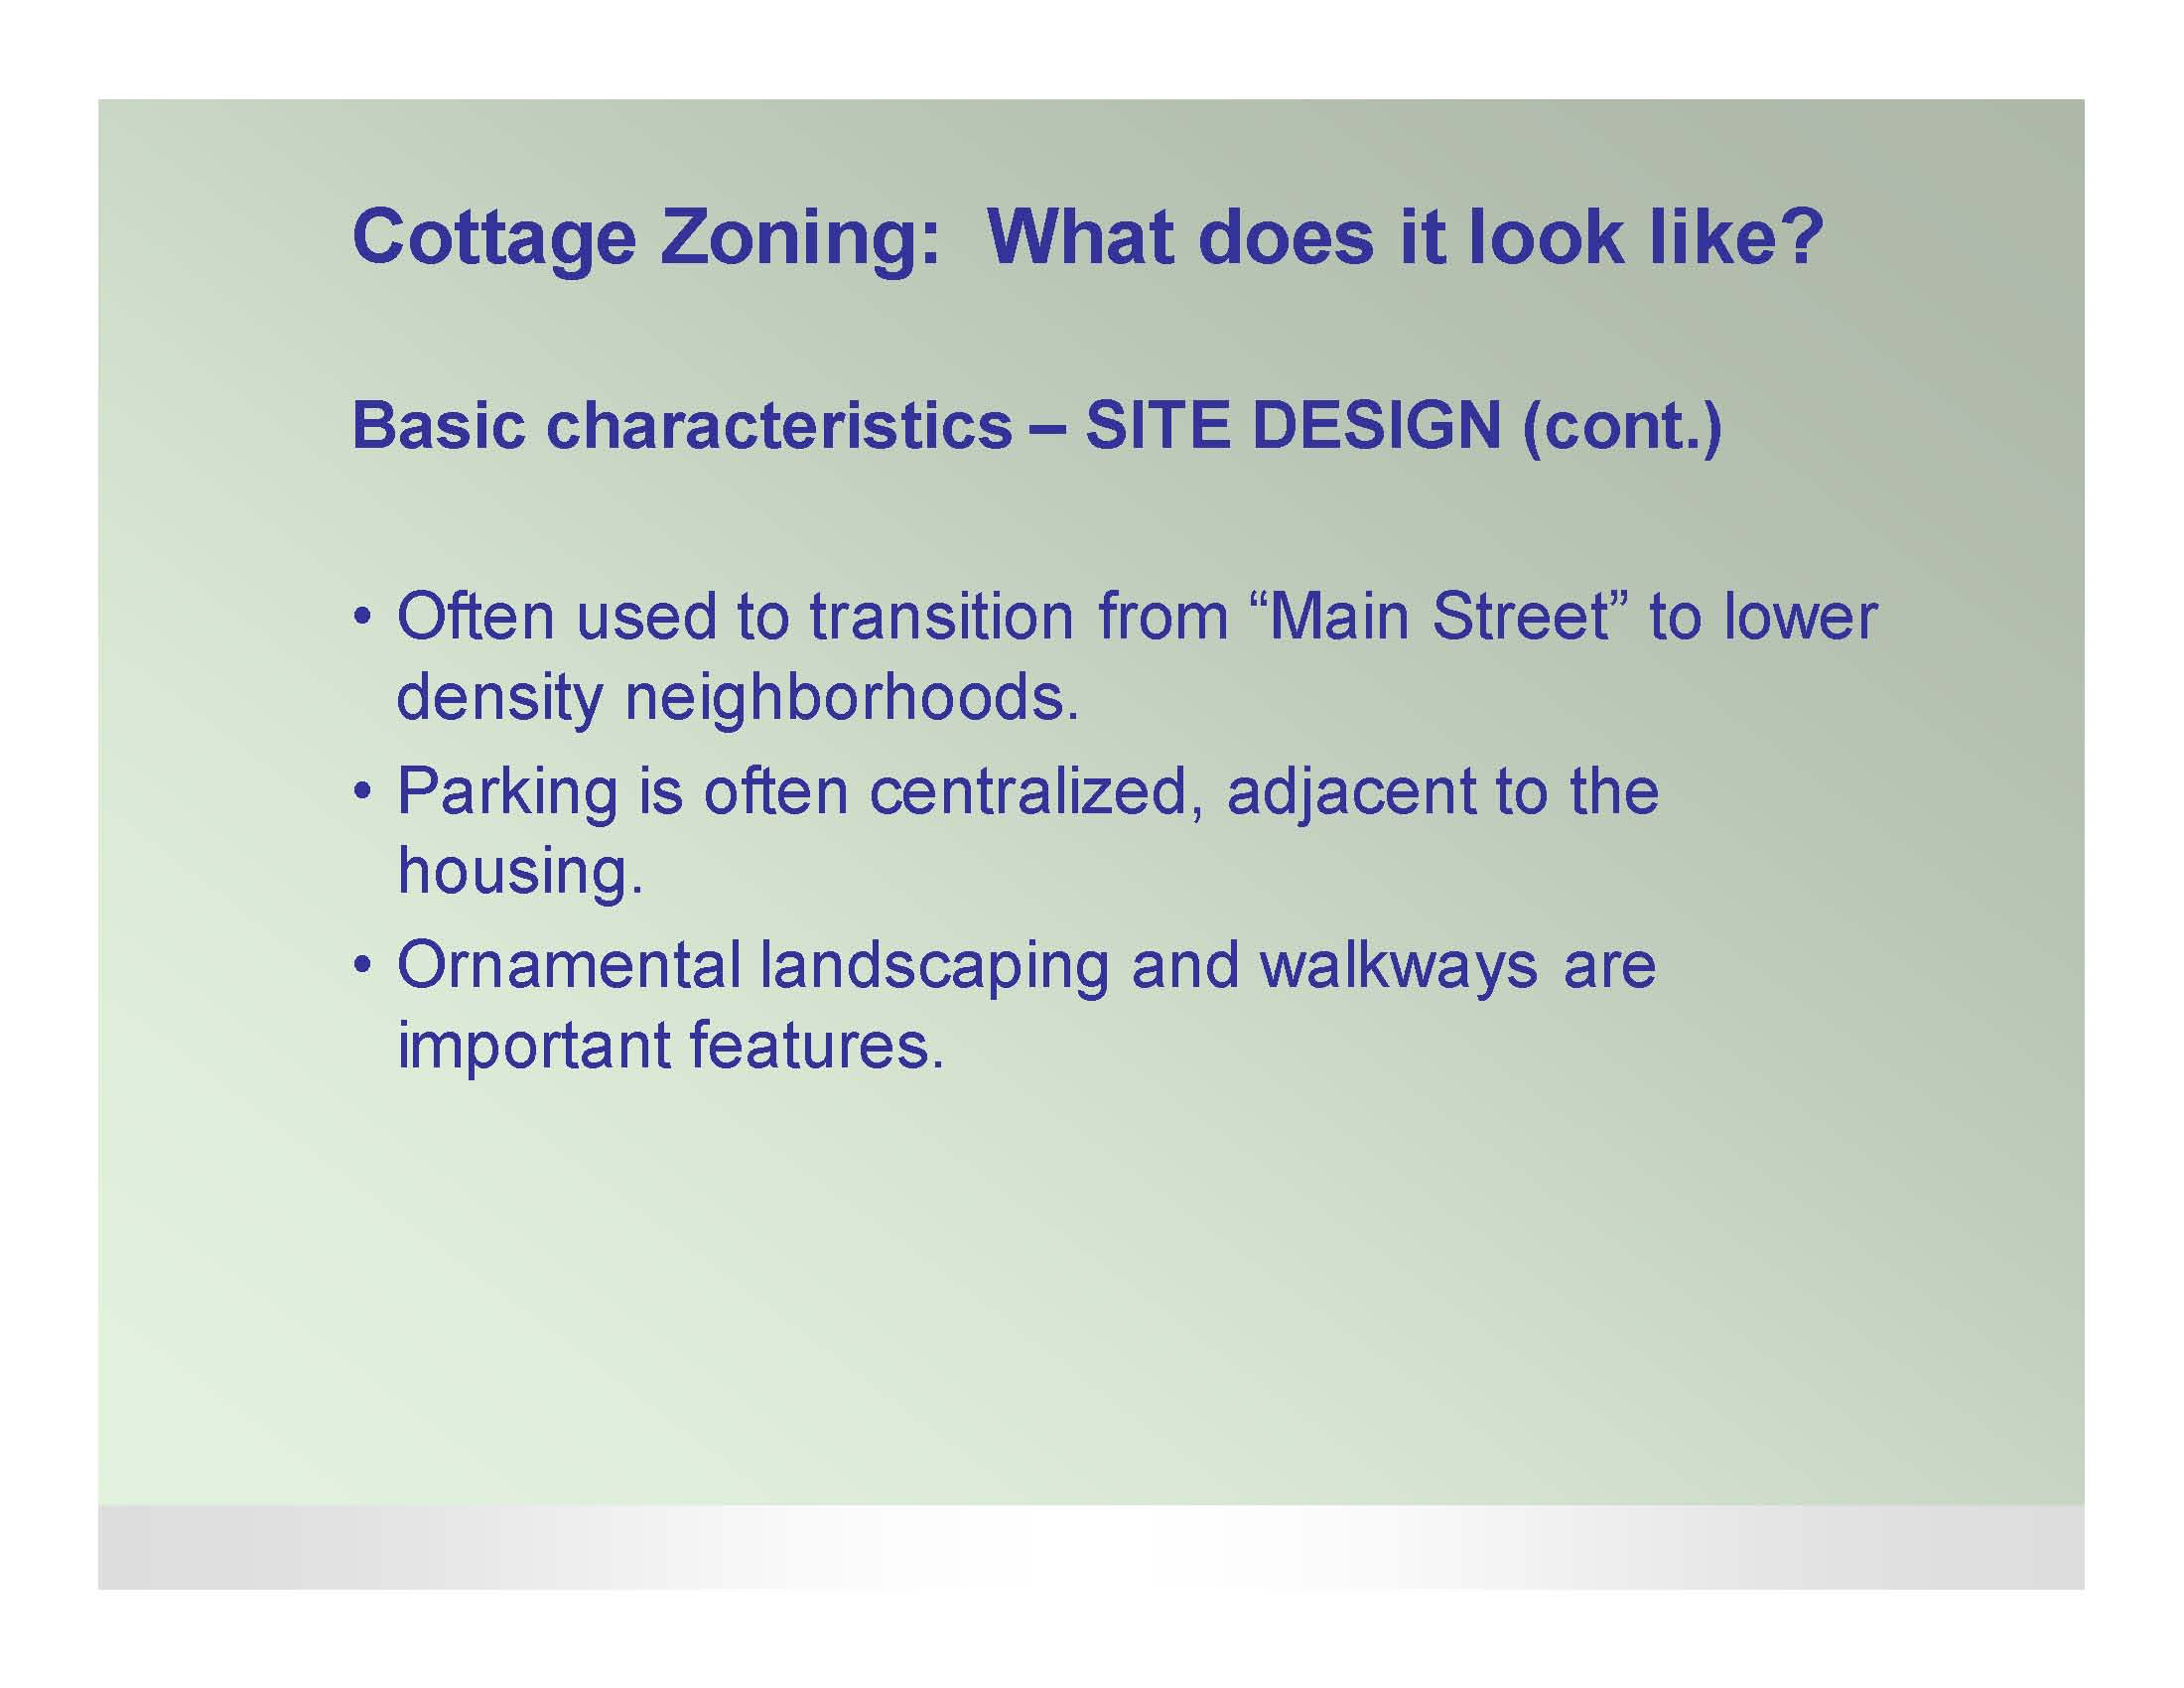 Groton_Cottage_Community_Overview_Page_05.jpg